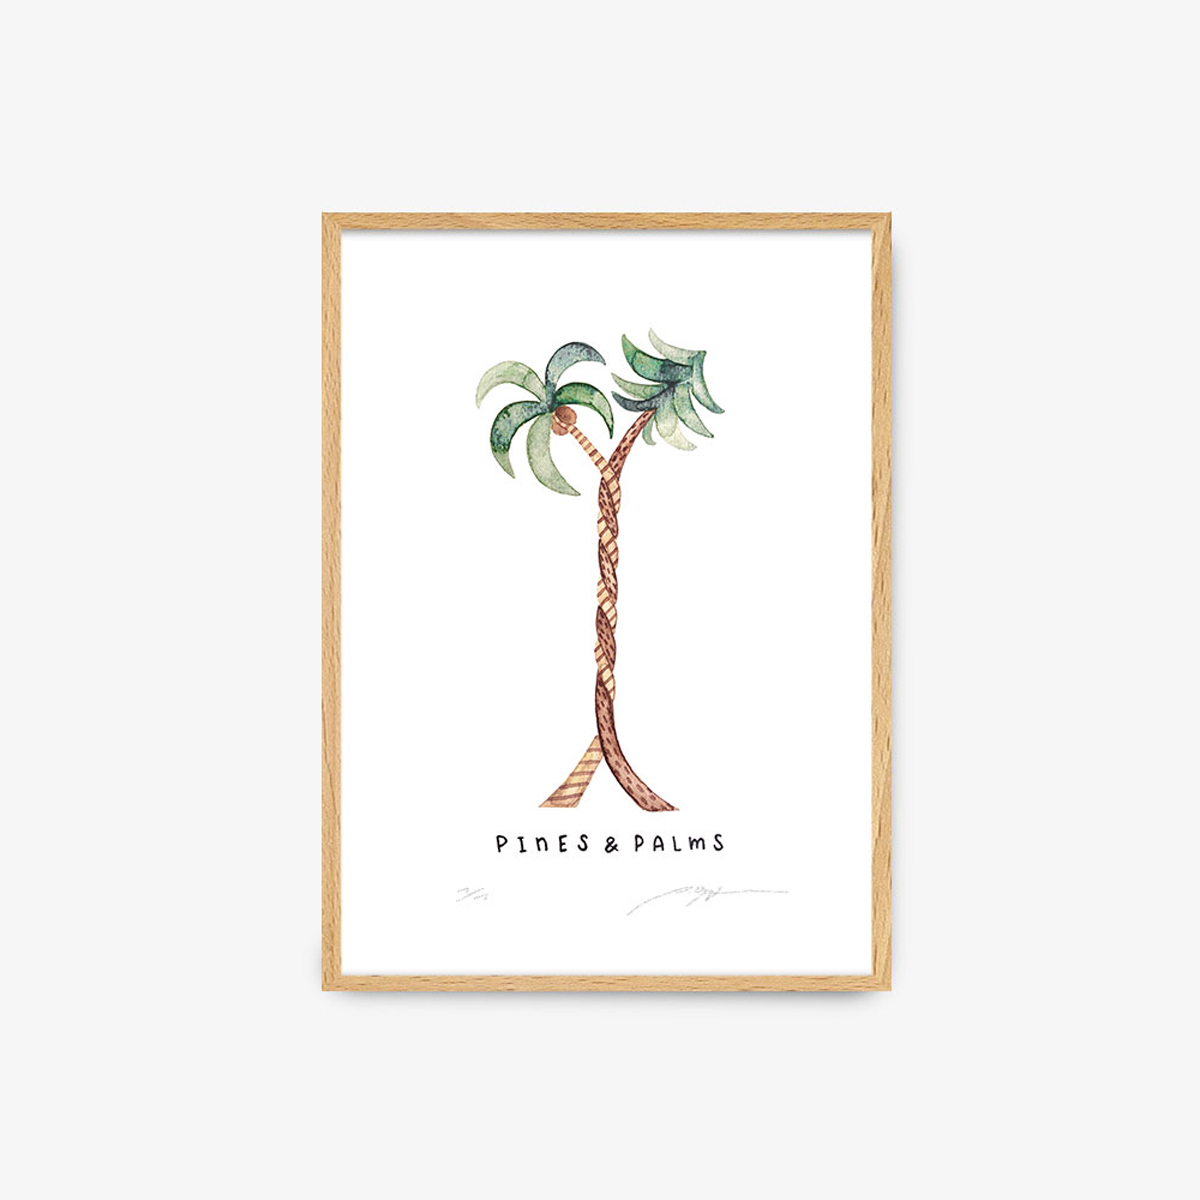 PinesandPalms